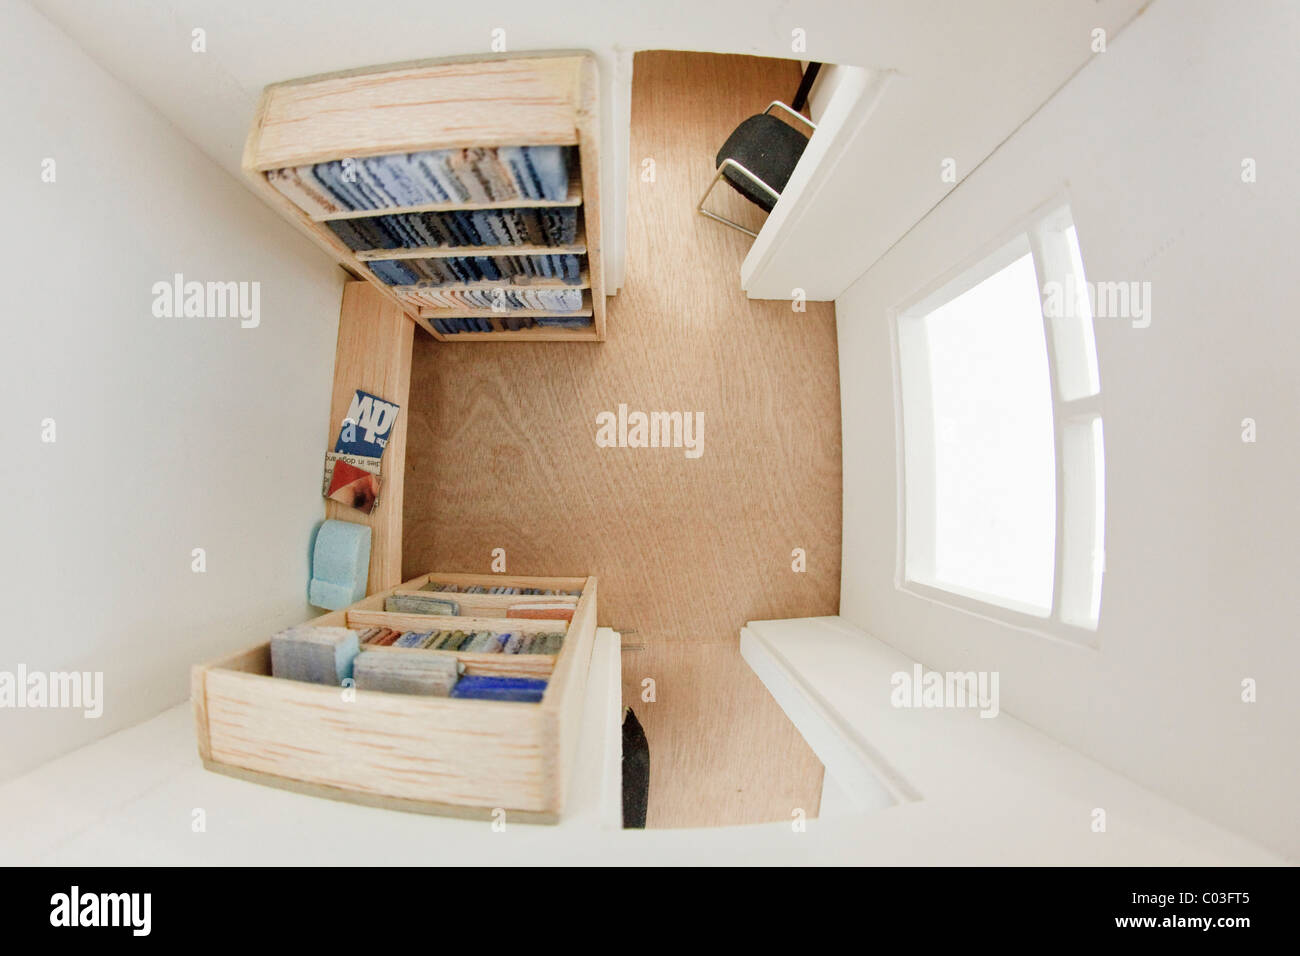 View into a room with book shelves in a doll's house - Stock Image